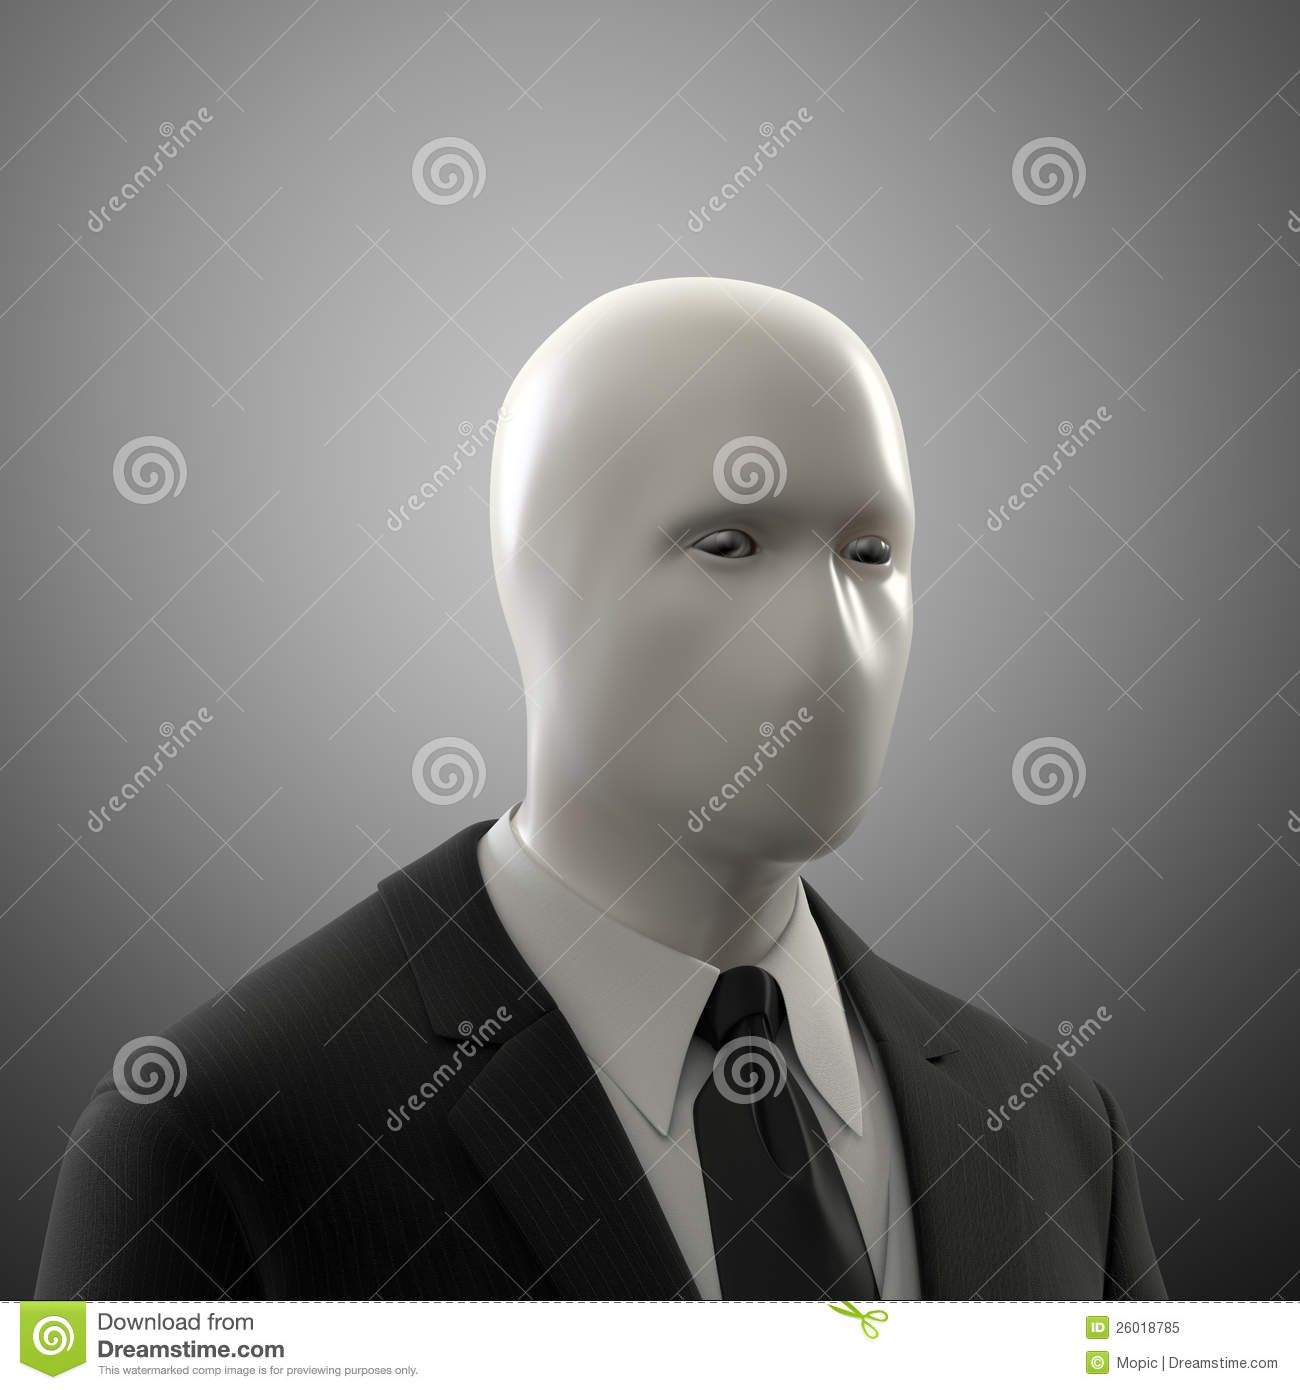 Man Without A Face Royalty Free Stock Photo